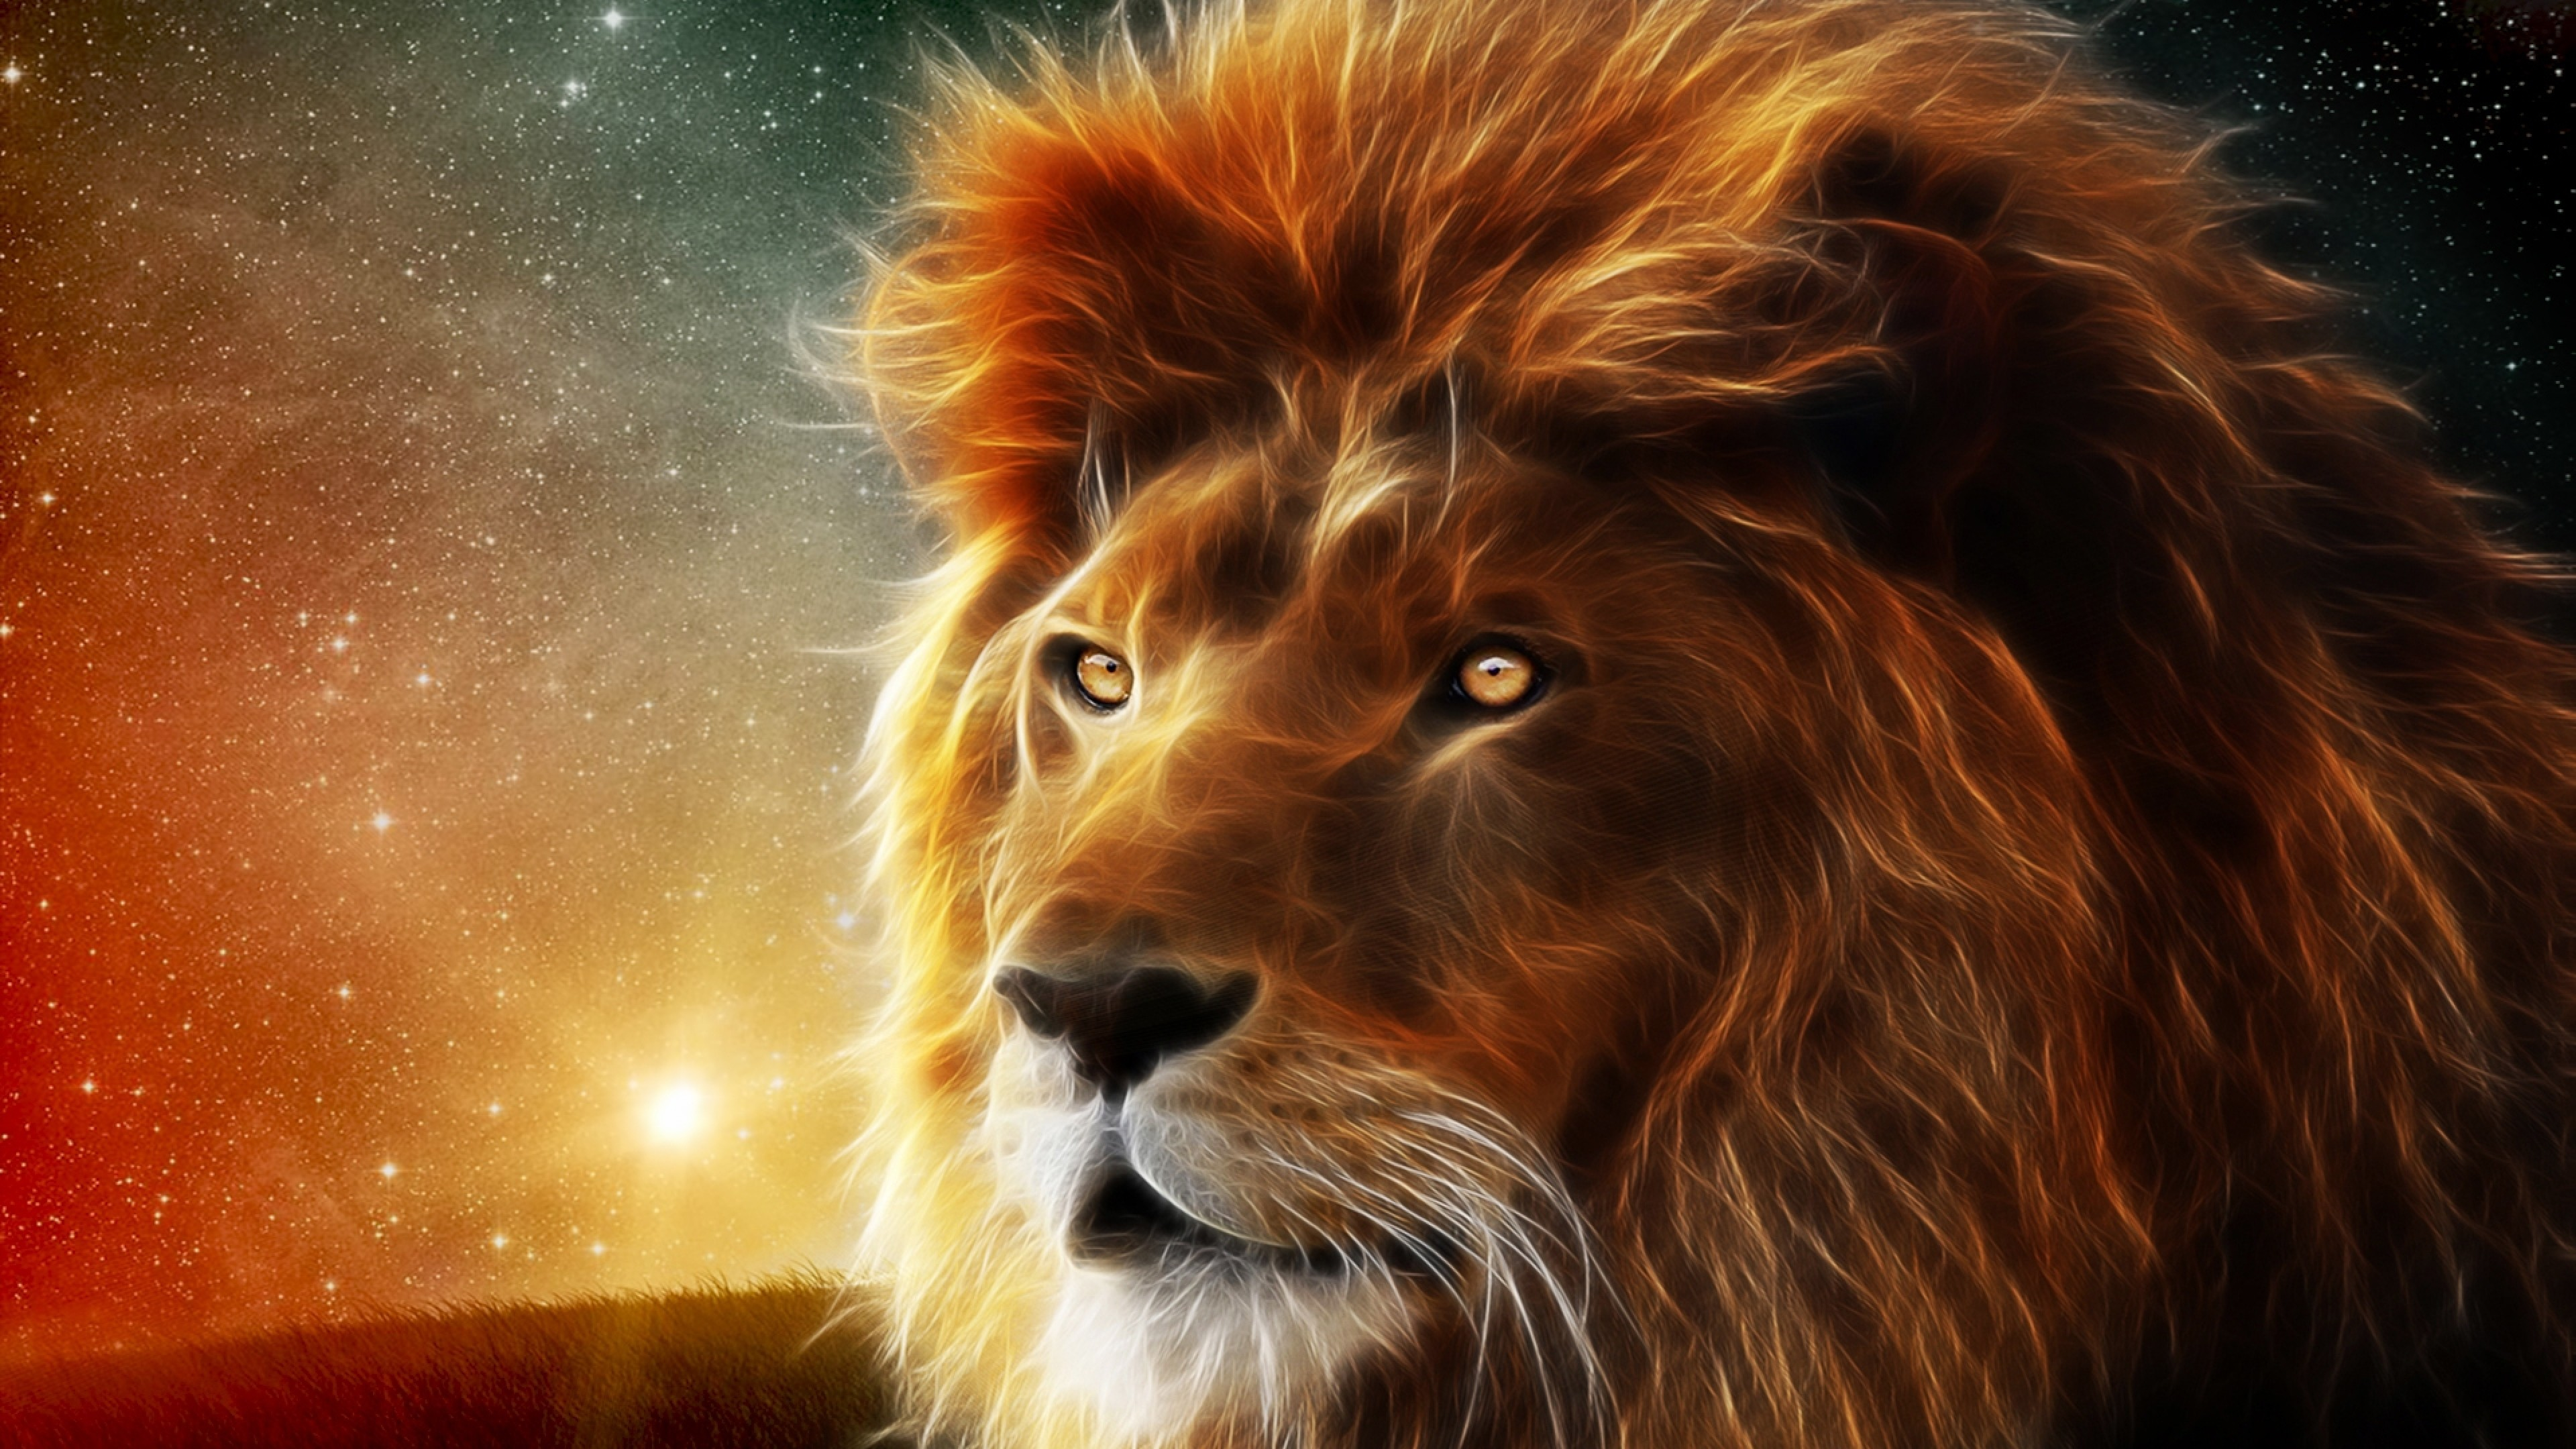 156728 lion wallpaper hd 3840x2160 for phone